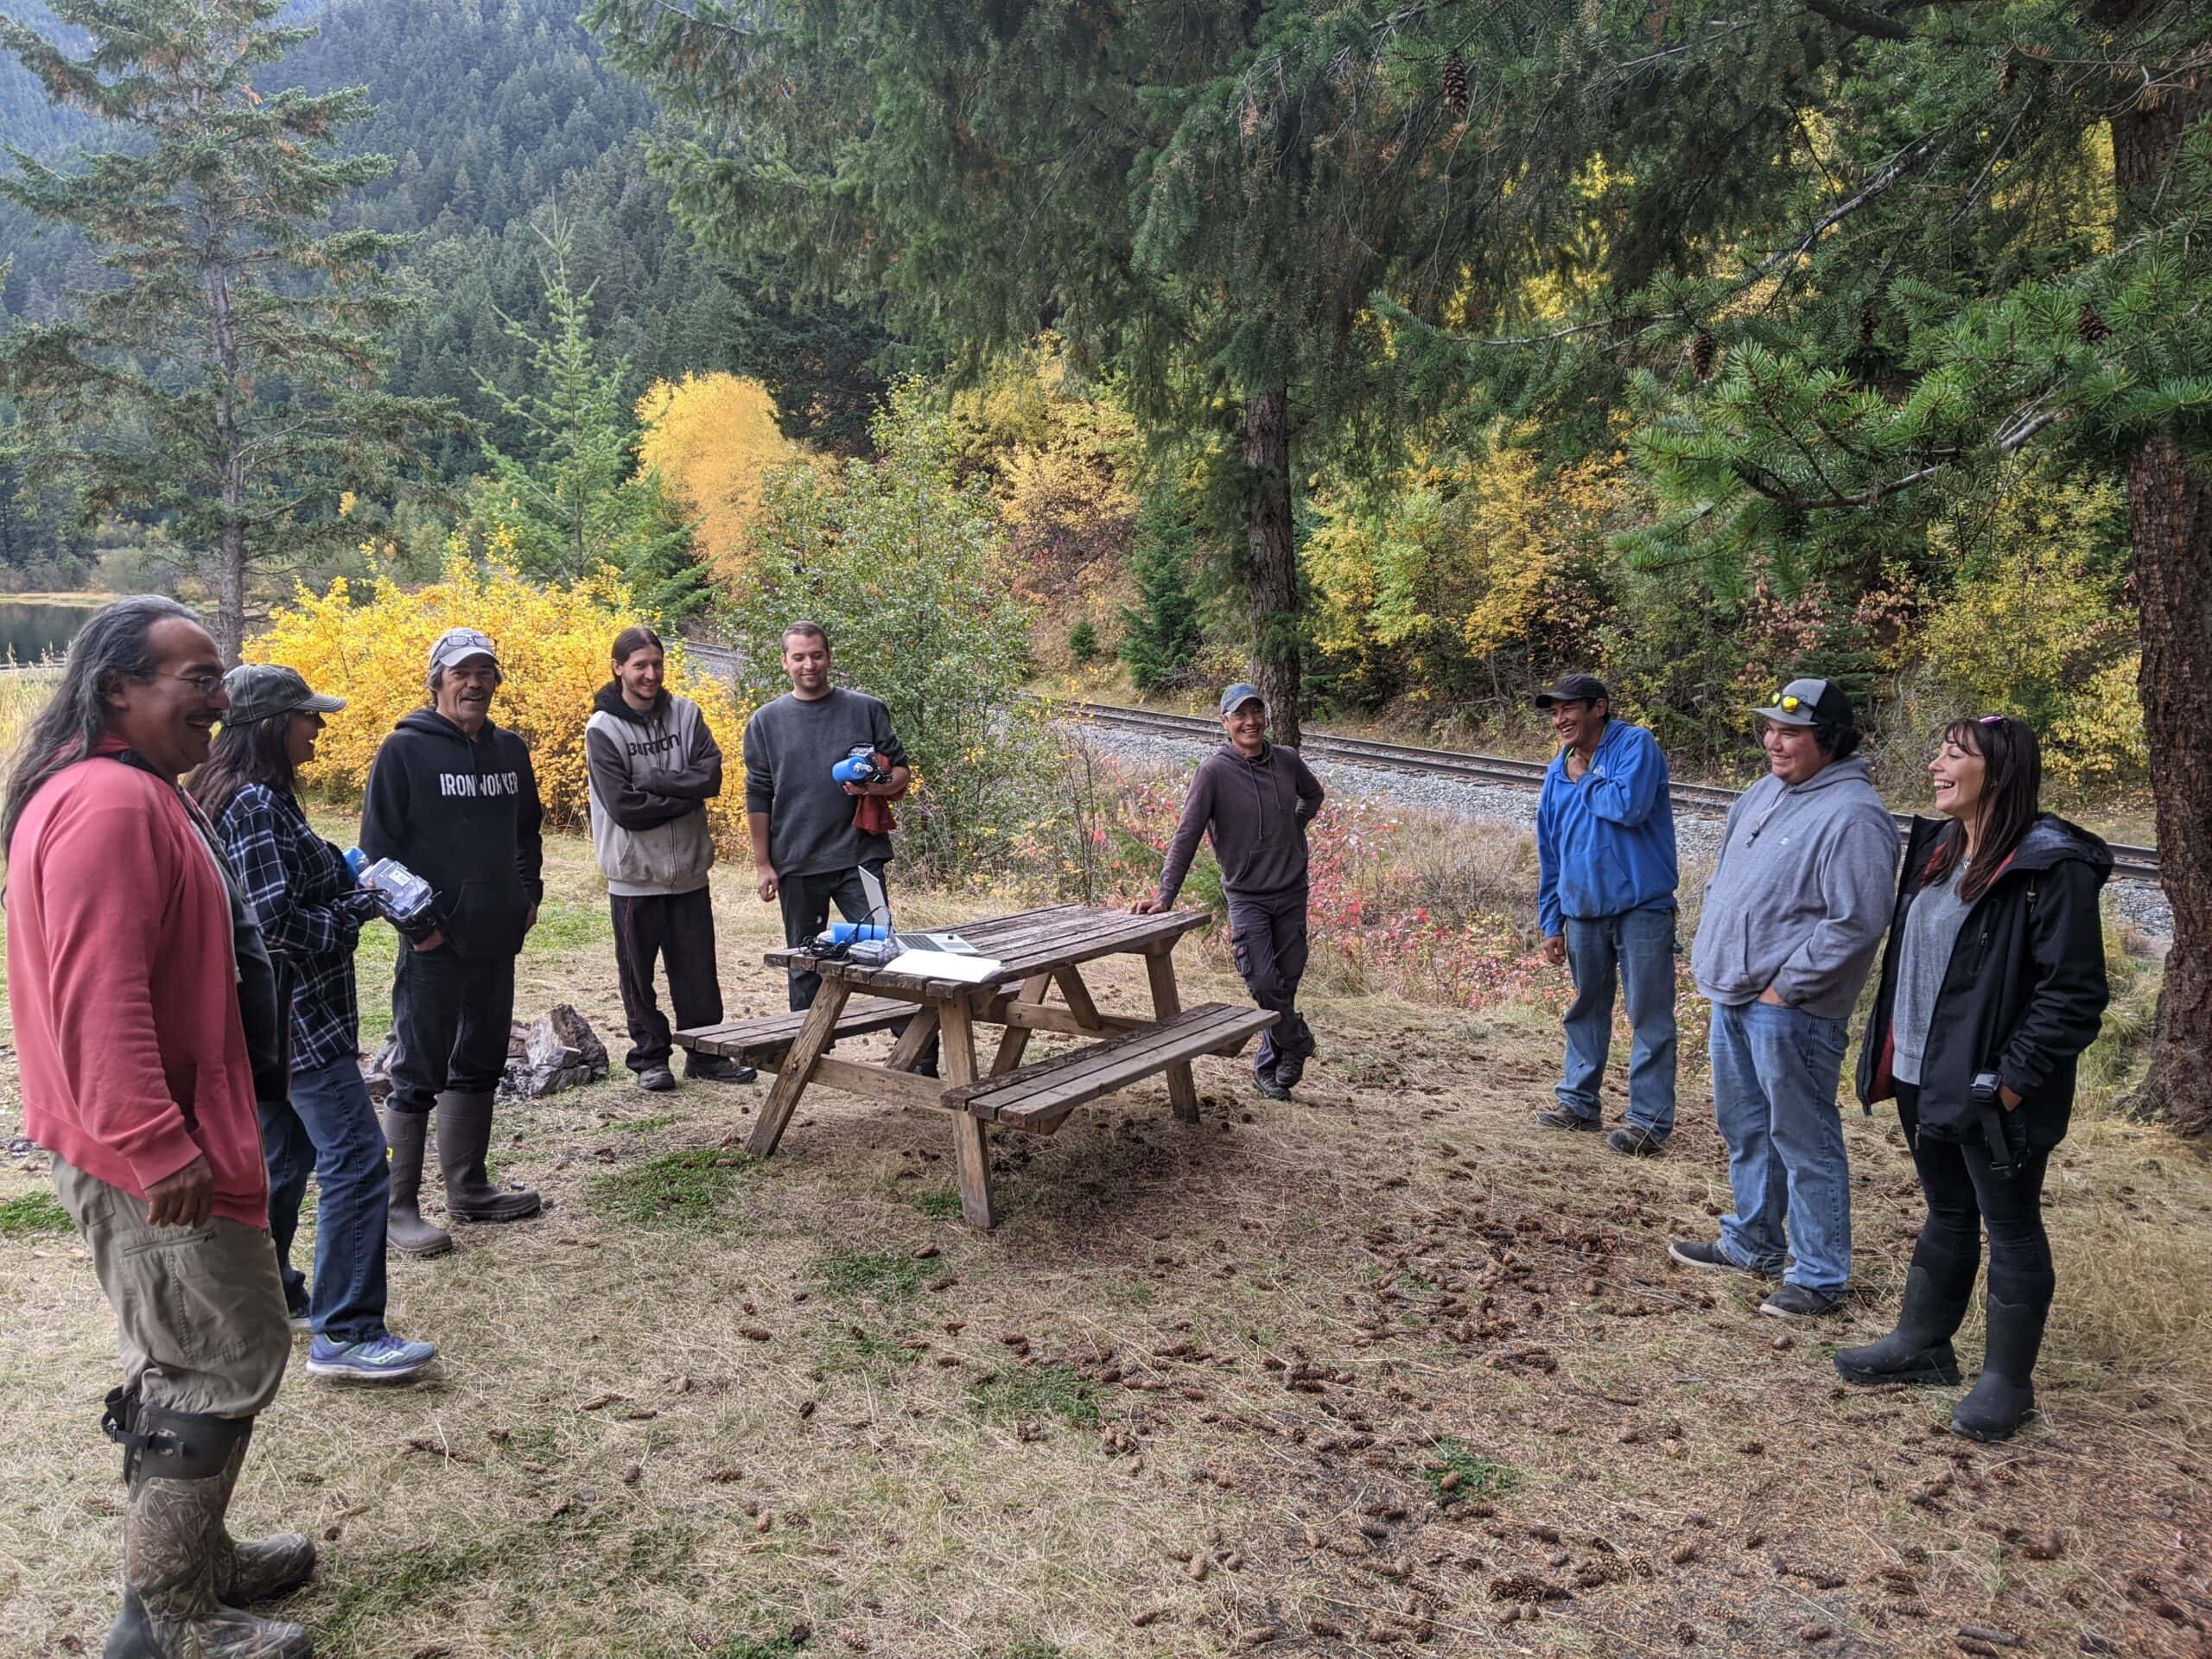 group of people stand around picnic table in forest